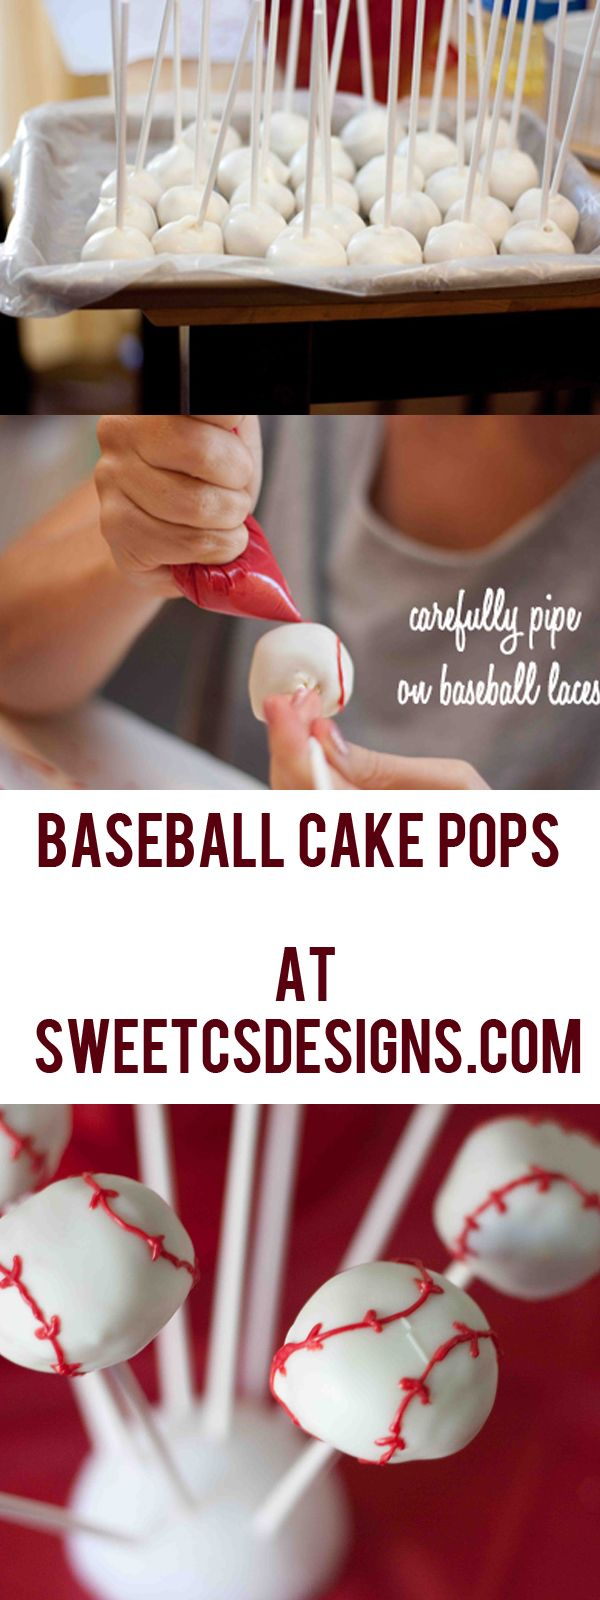 Little Man's first birthday was this last weekend, and we had a huge baseball birthday bash to celebrate! Yesterday I showed everyone his adorable little Baseball First Birthday Cake, and today comes another addition to our sweets table- Baseball Cake Pops! These ooey, gooey, crunchy, sweet pops were a huge hit- and through our trial...Read More »